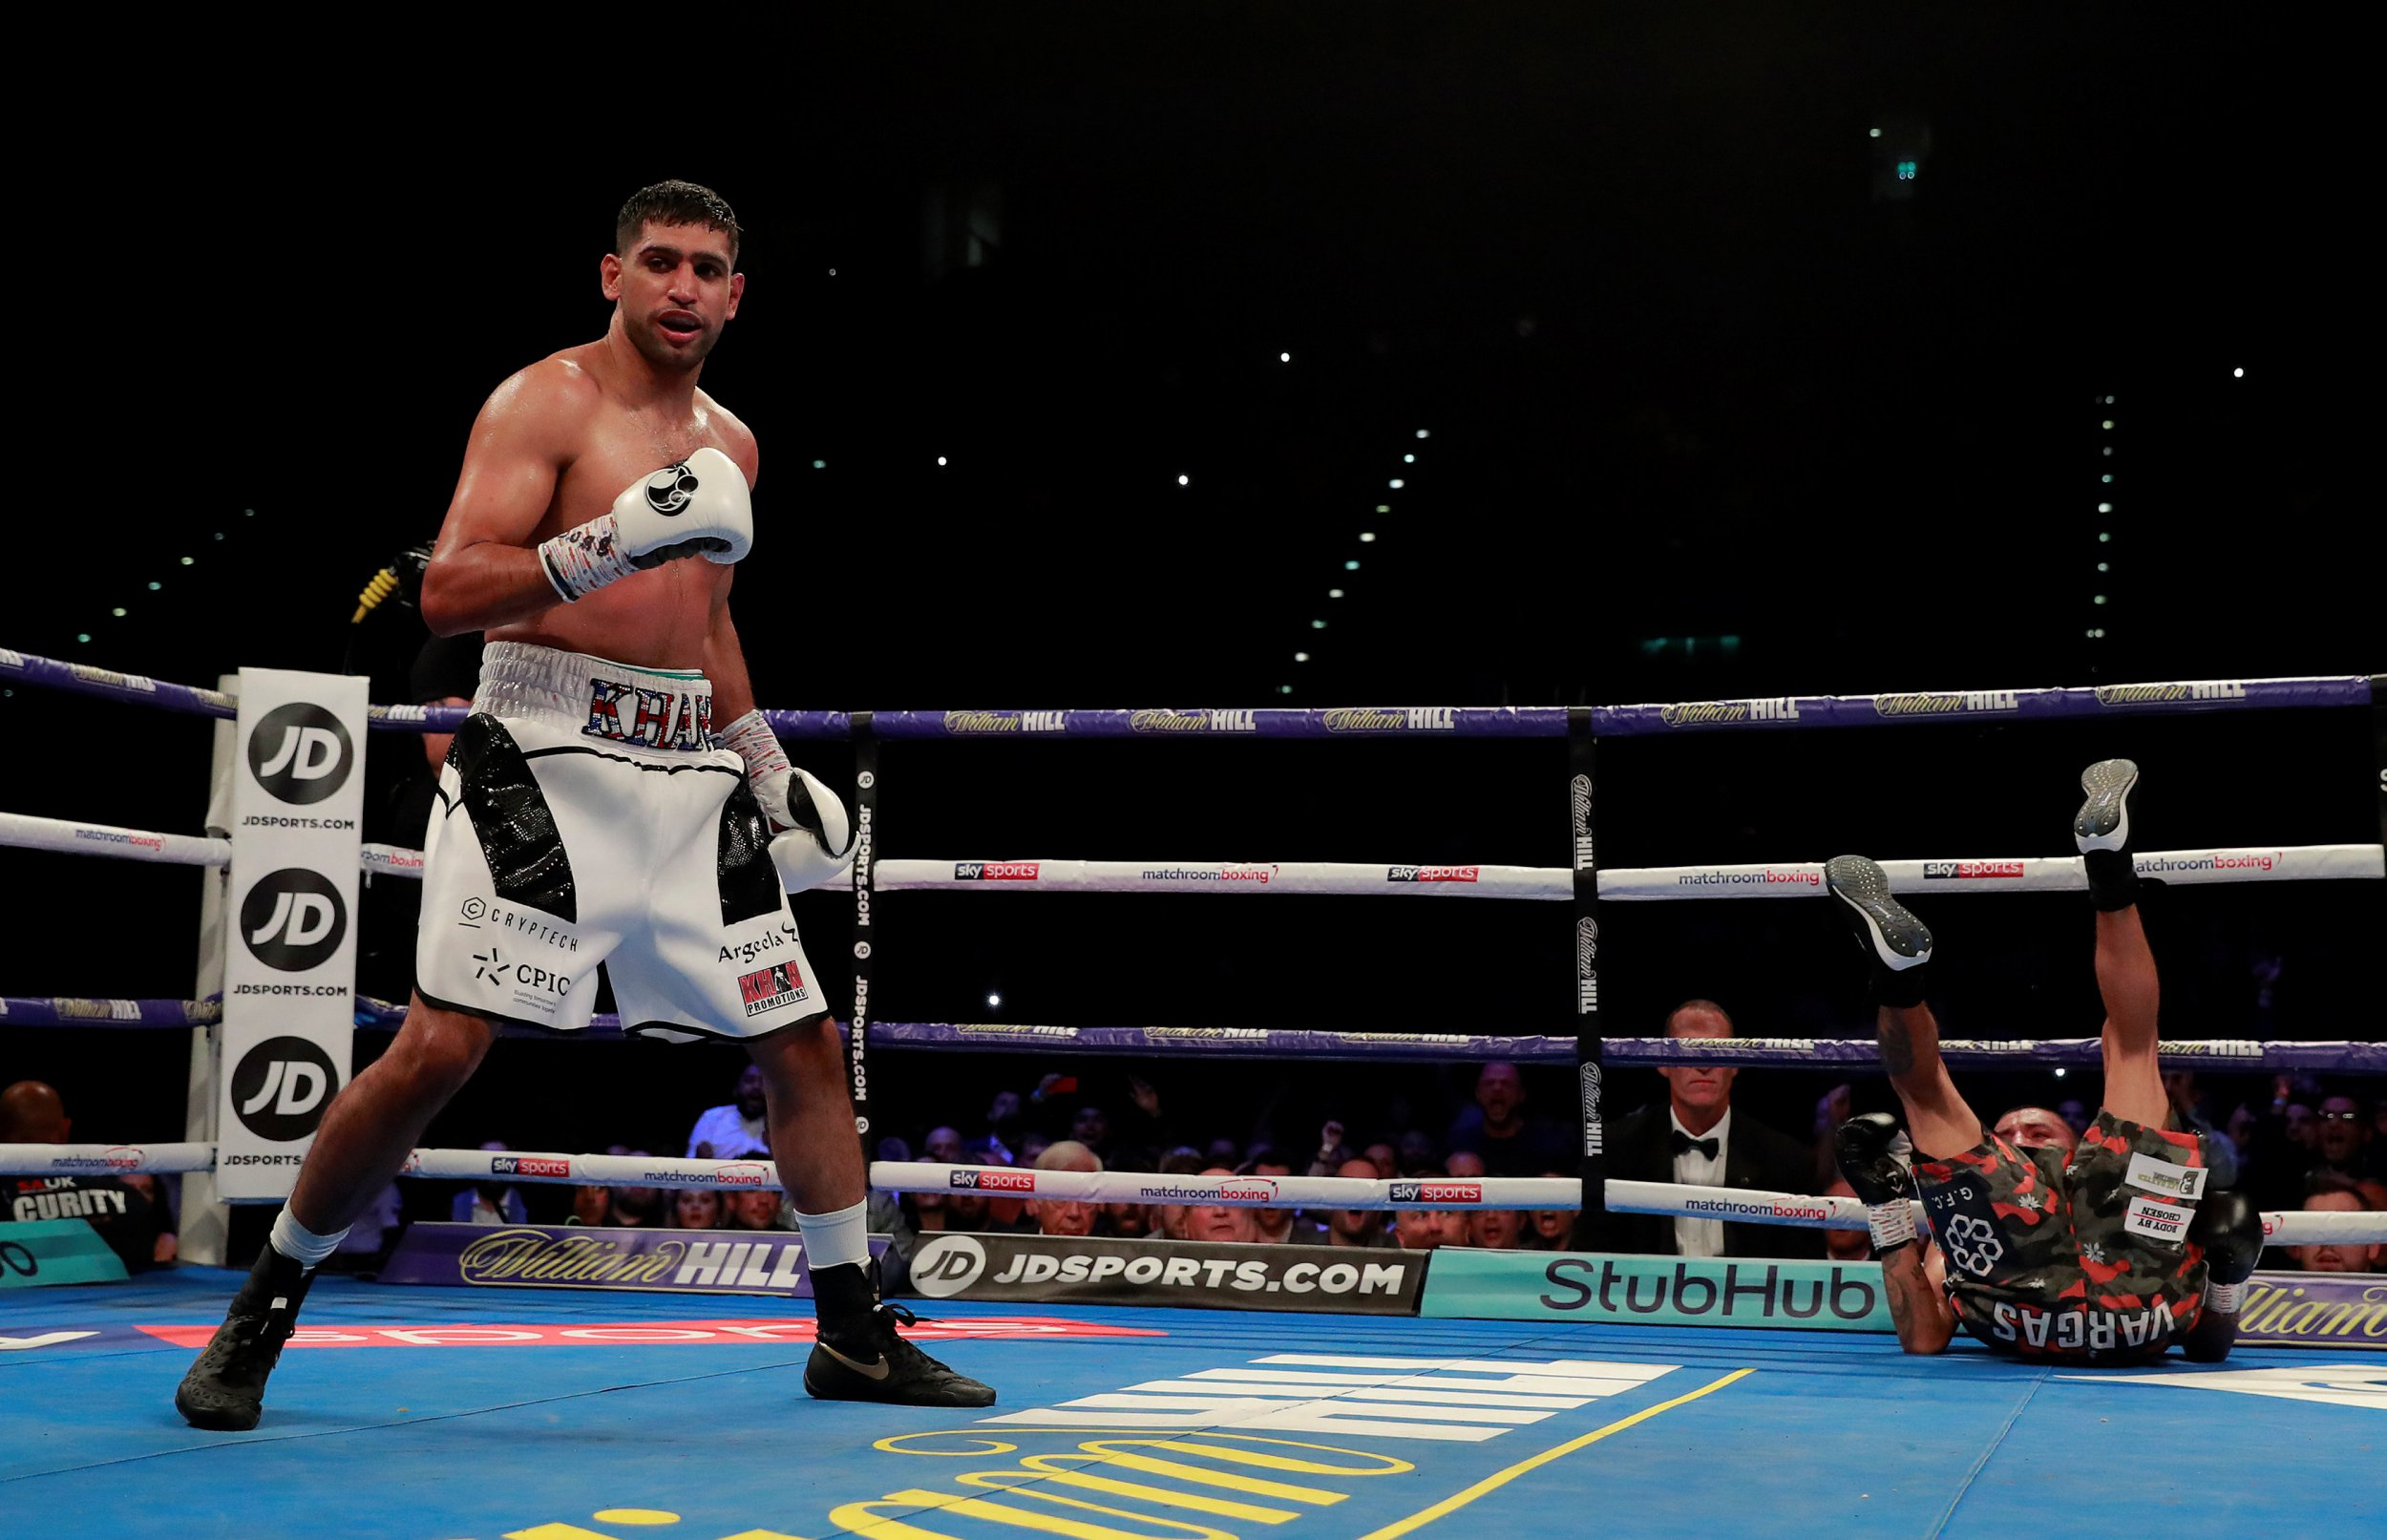 Boxing - Amir Khan v Samuel Vargas - Arena Birmingham, Birmingham, Britain - September 8, 2018 Amir Khan after knocking down Samuel Vargas Action Images via Reuters/Andrew Couldridge